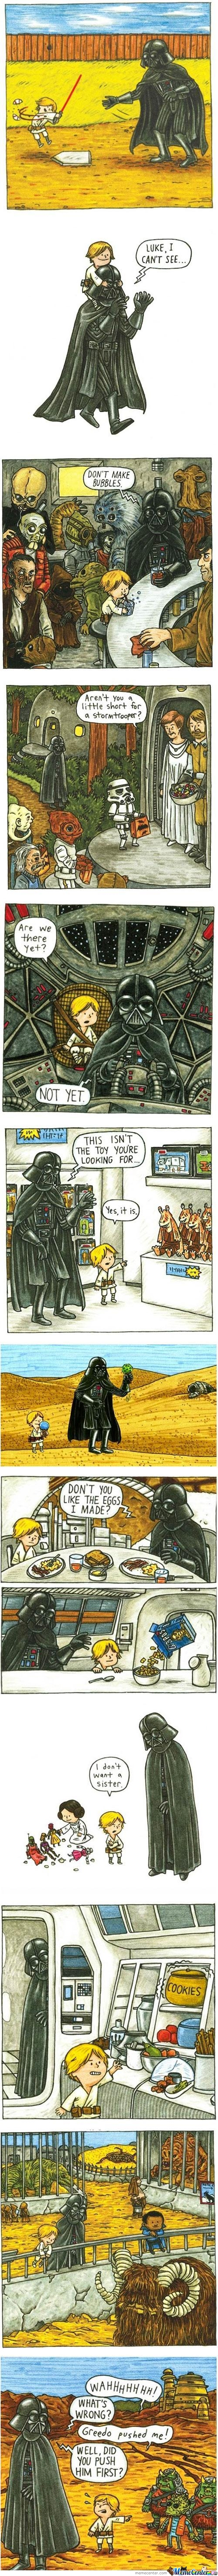 If Darth Vader Had Been A Good Father